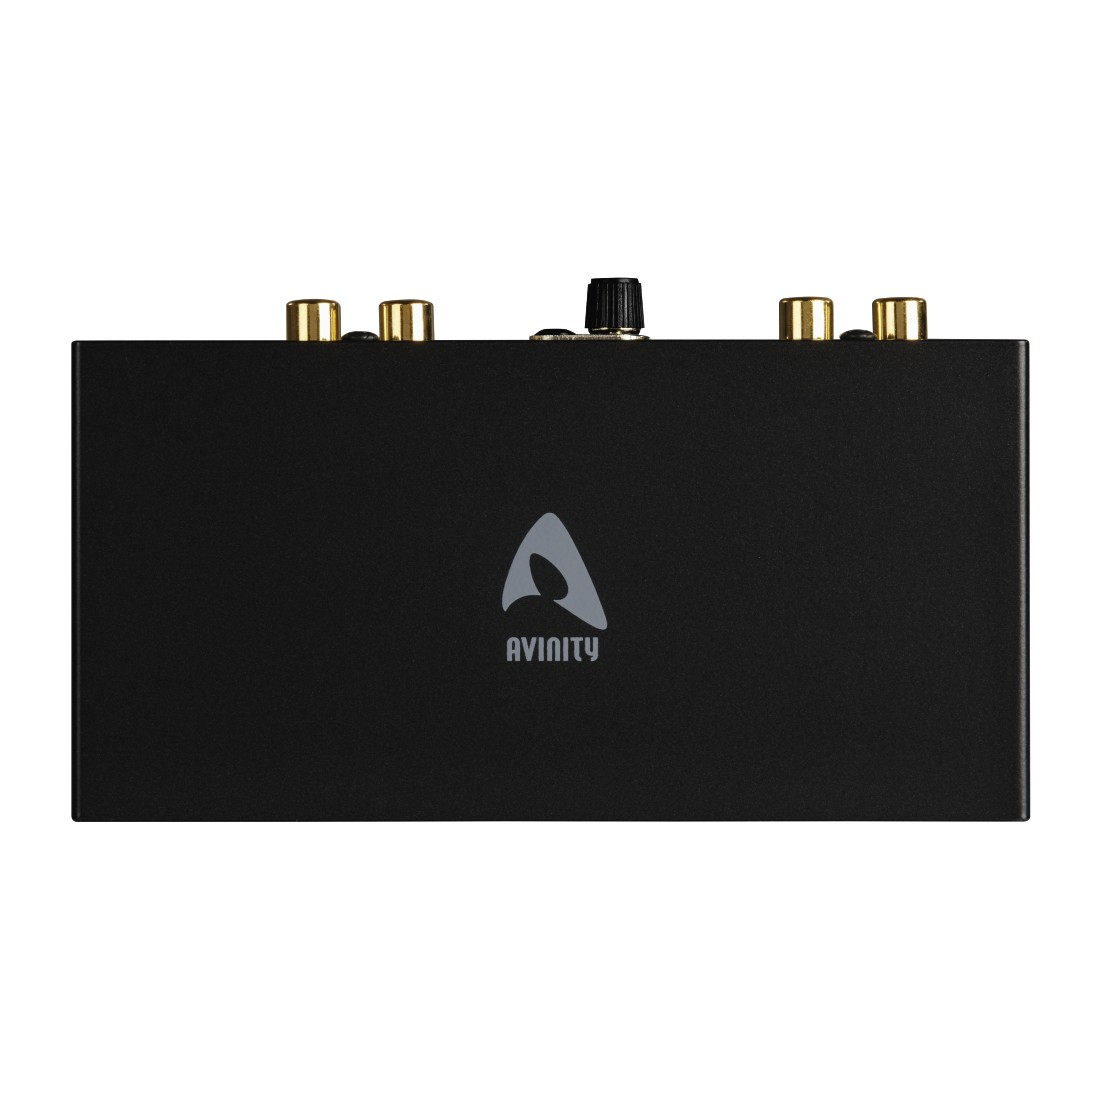 dex High-Res Detail - Avinity, ATP-507 Stereo Phono Preamplifier, with 230 V/50 Hz power supply unit